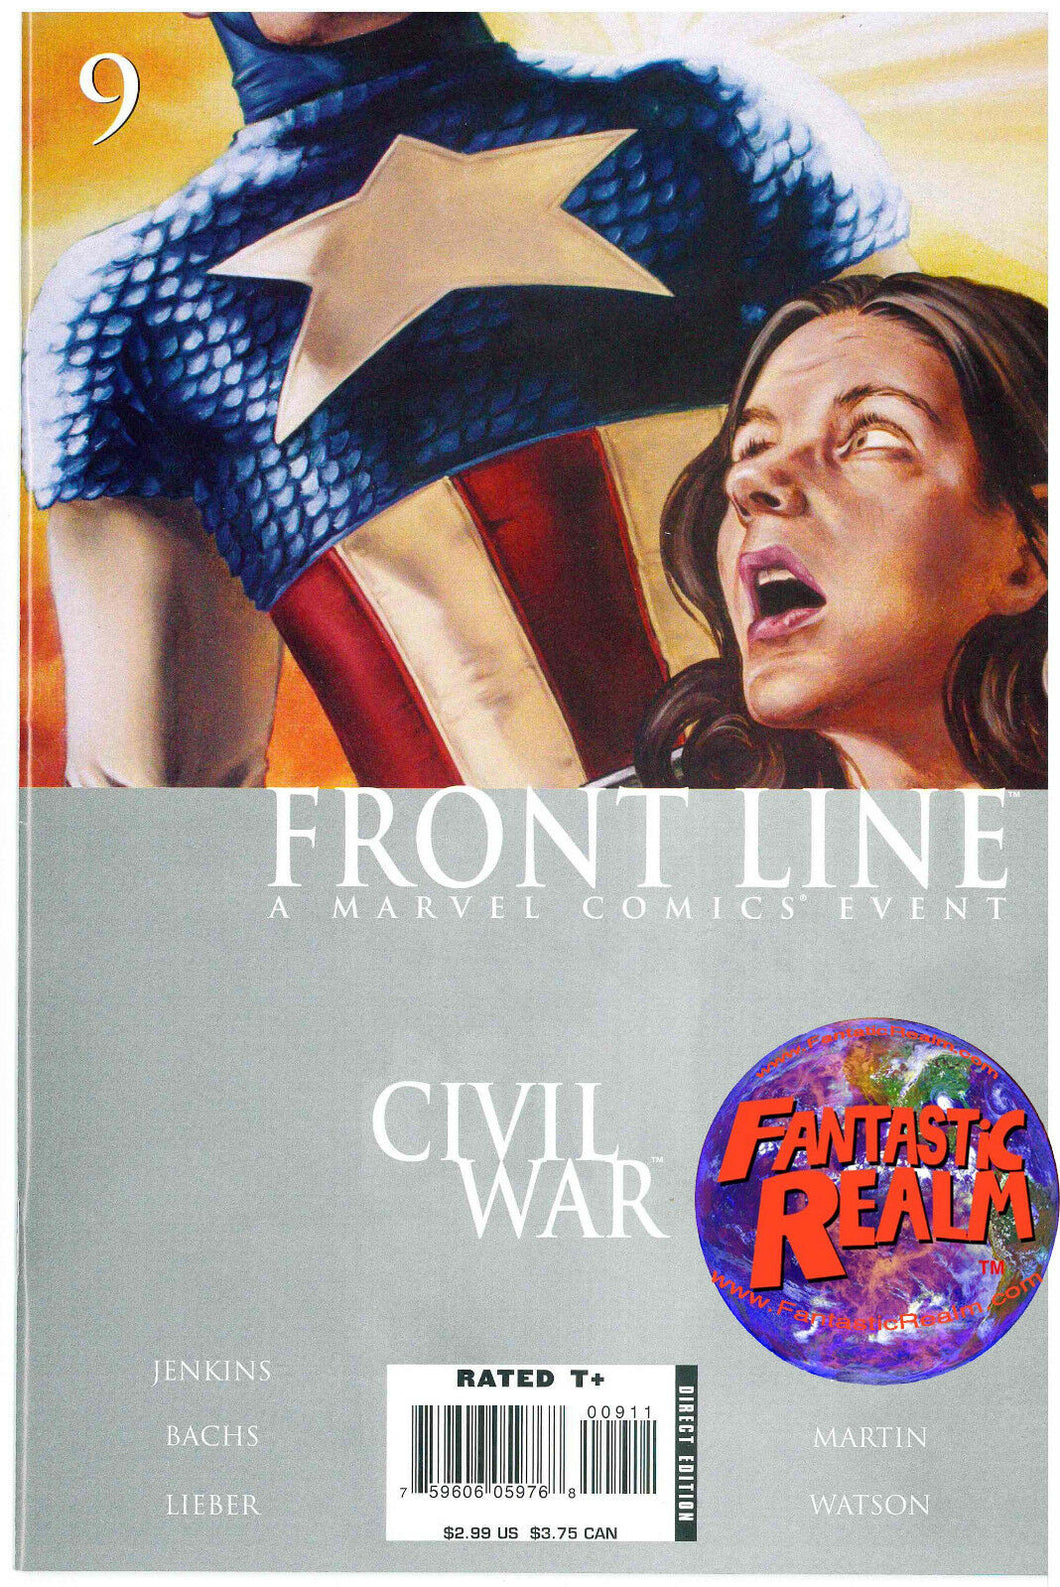 CIVIL WAR: FRONT LINE #9, 10, 11 (2006) MARVEL COMIC